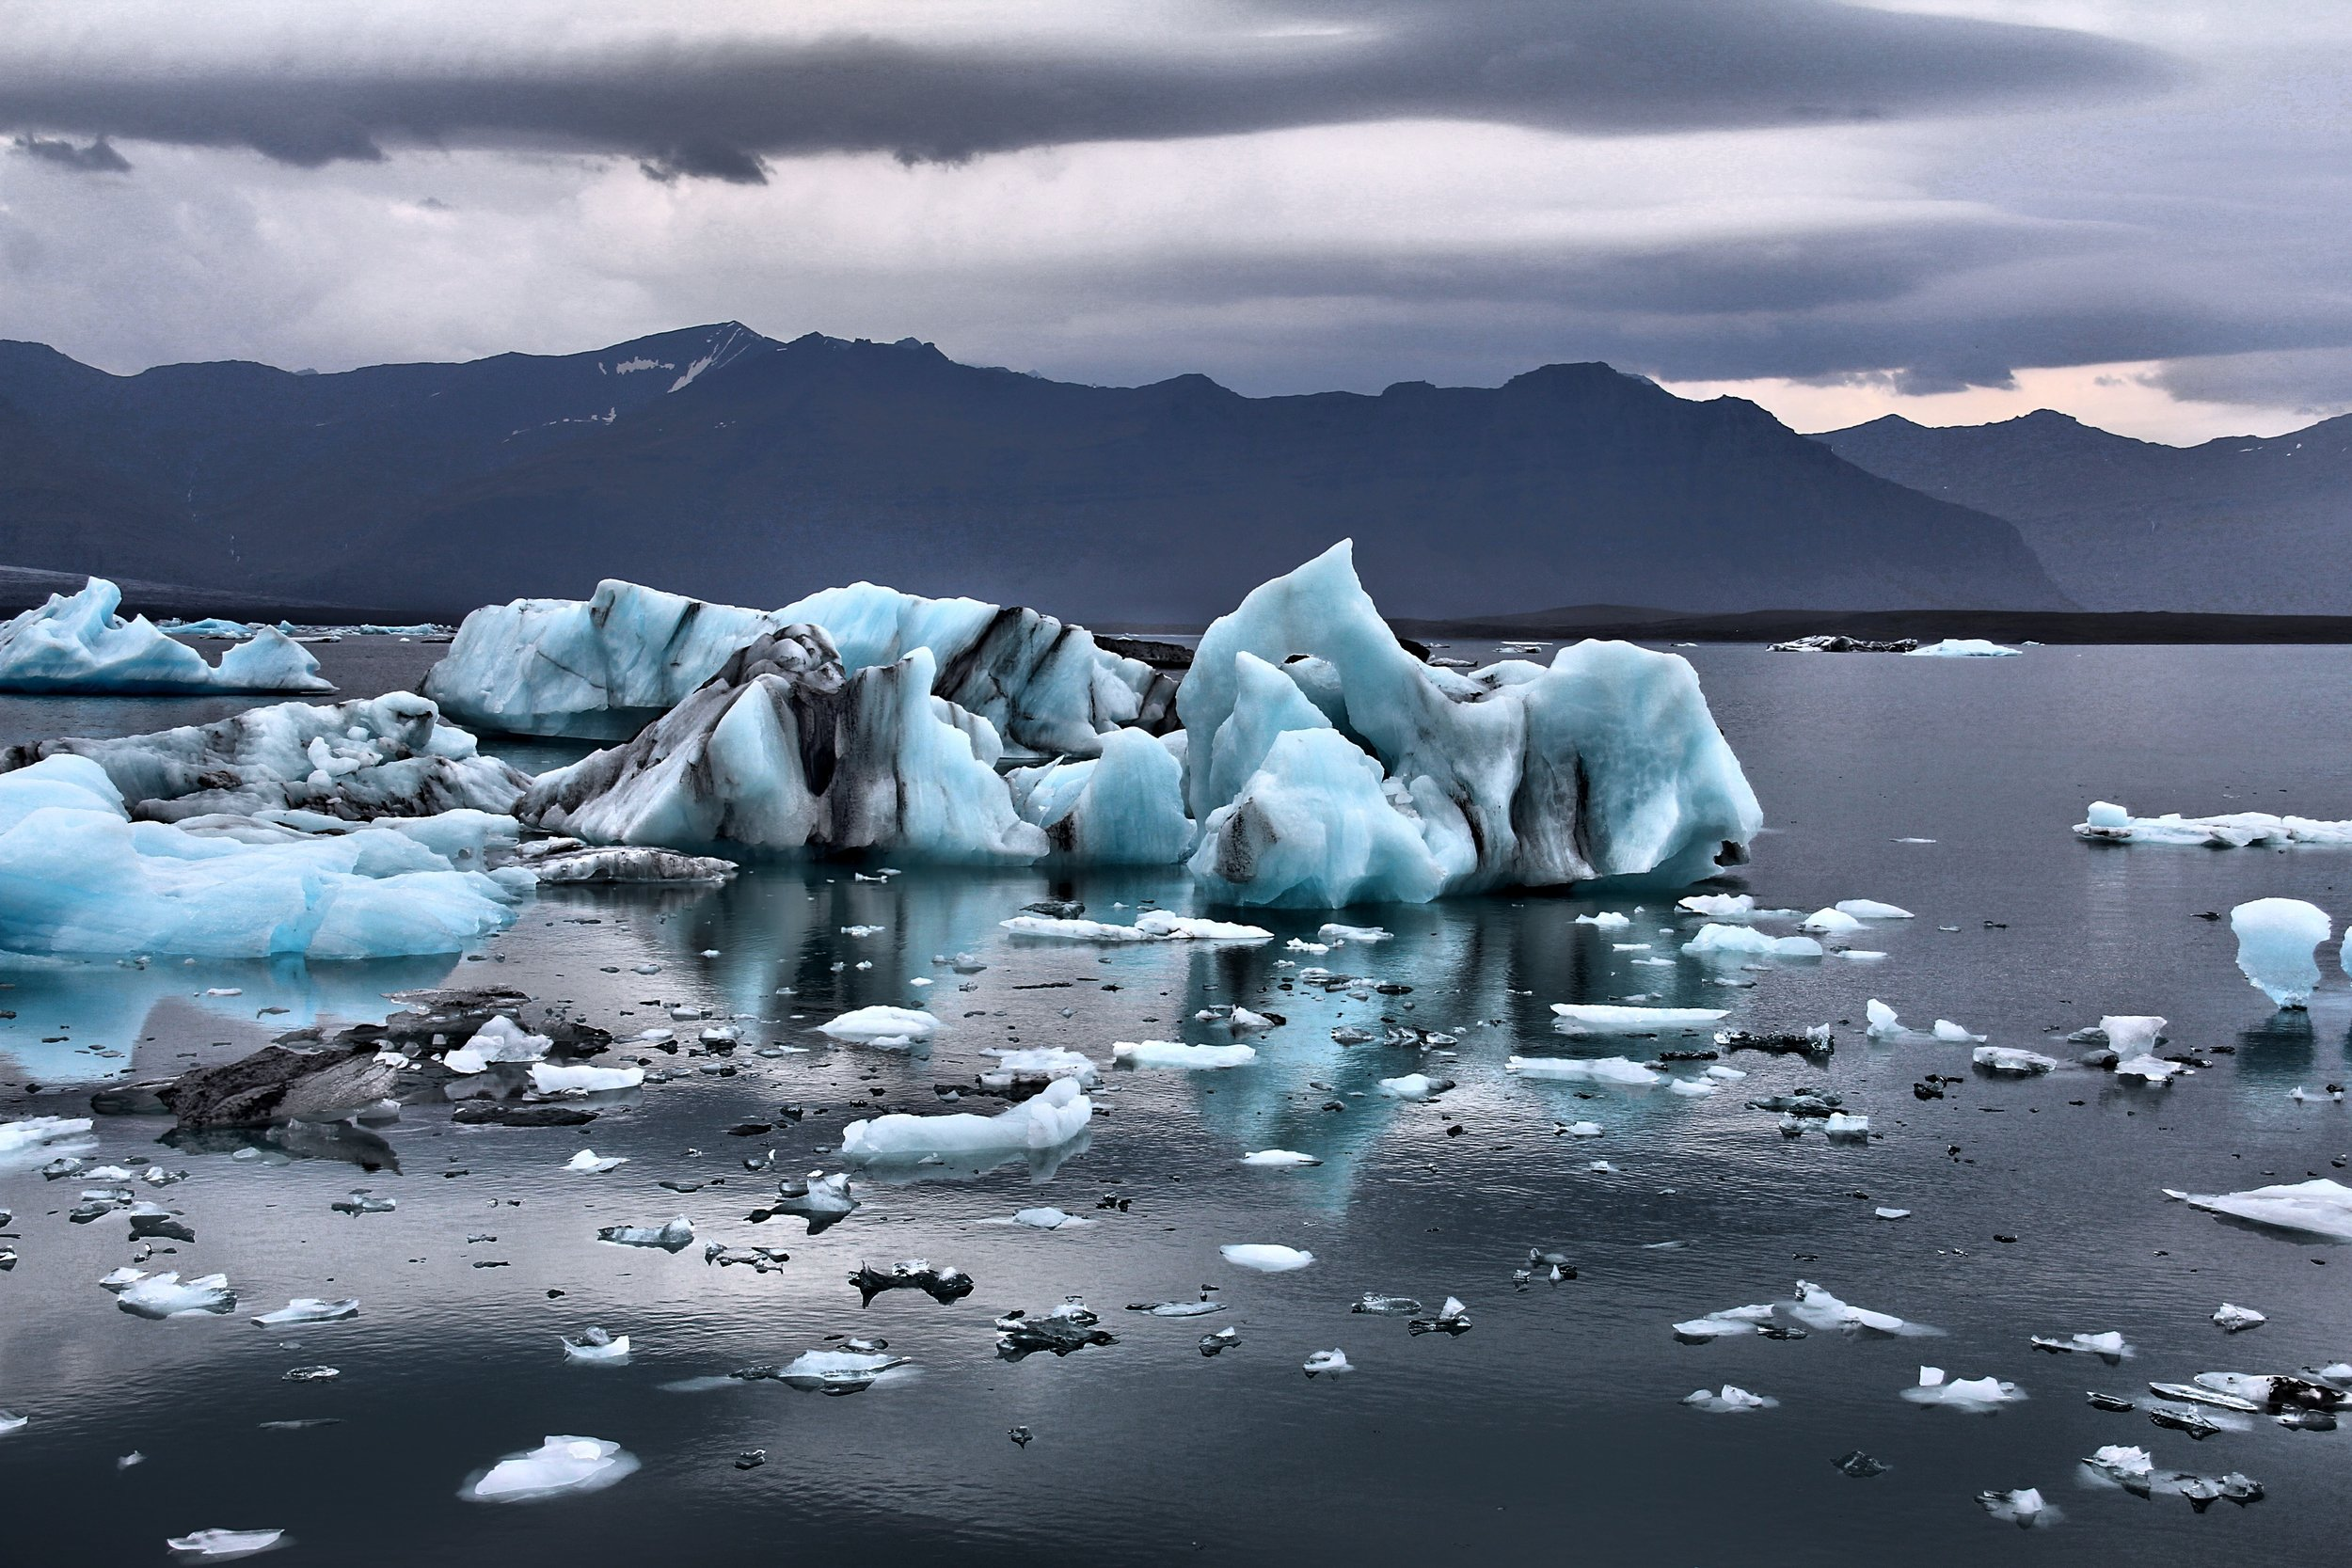 Climate Change for Beginners - Feel confused about what the facts are? Overwhelmed by information but unsure how to apply it to your life? Need to have some facts at your fingertips? Curious but don't have the time to go through all the data out there?